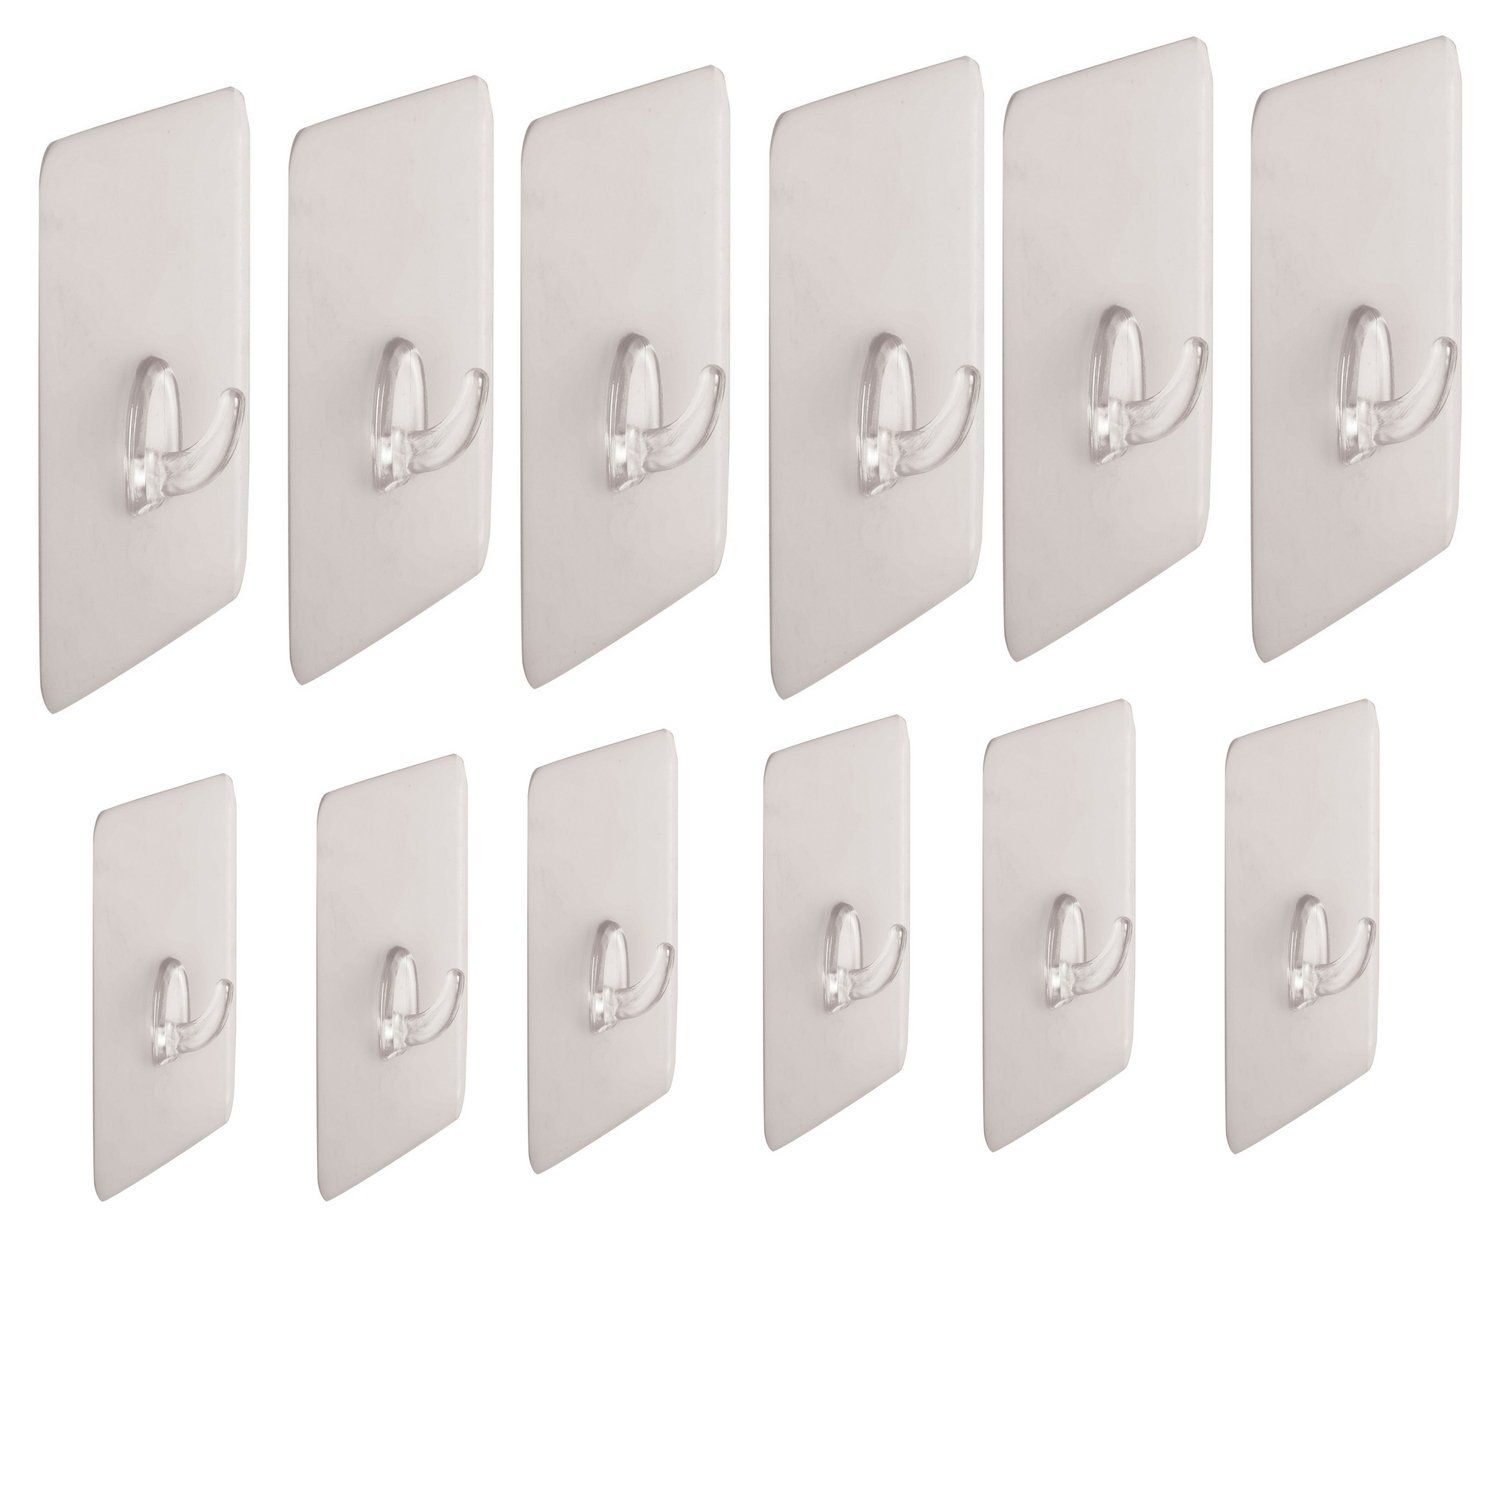 Removable Adhesive Wall Hangers Without Nails Stick On Ceiling Wall Hooks For Hanging Keys Set Of 12 Reusabl Wall Hanger Dorm Room Essentials Hanging Hooks